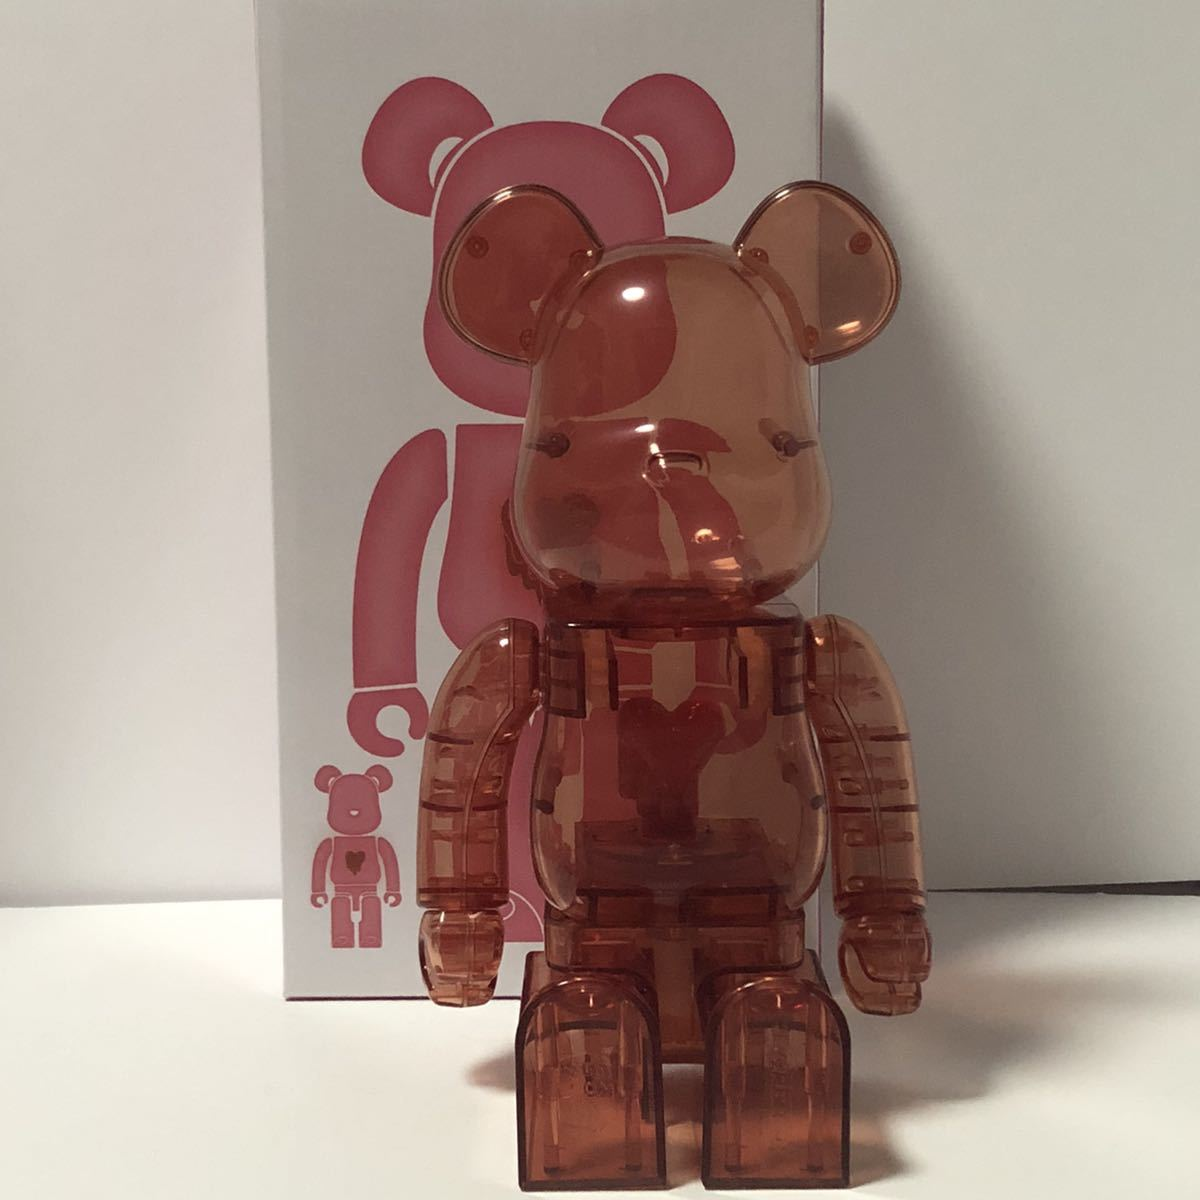 Bearbrick x Emotionally Unavailable Red Heart 400% Red レッド 赤 紅 ベアブリック BE@RBRICK _画像3